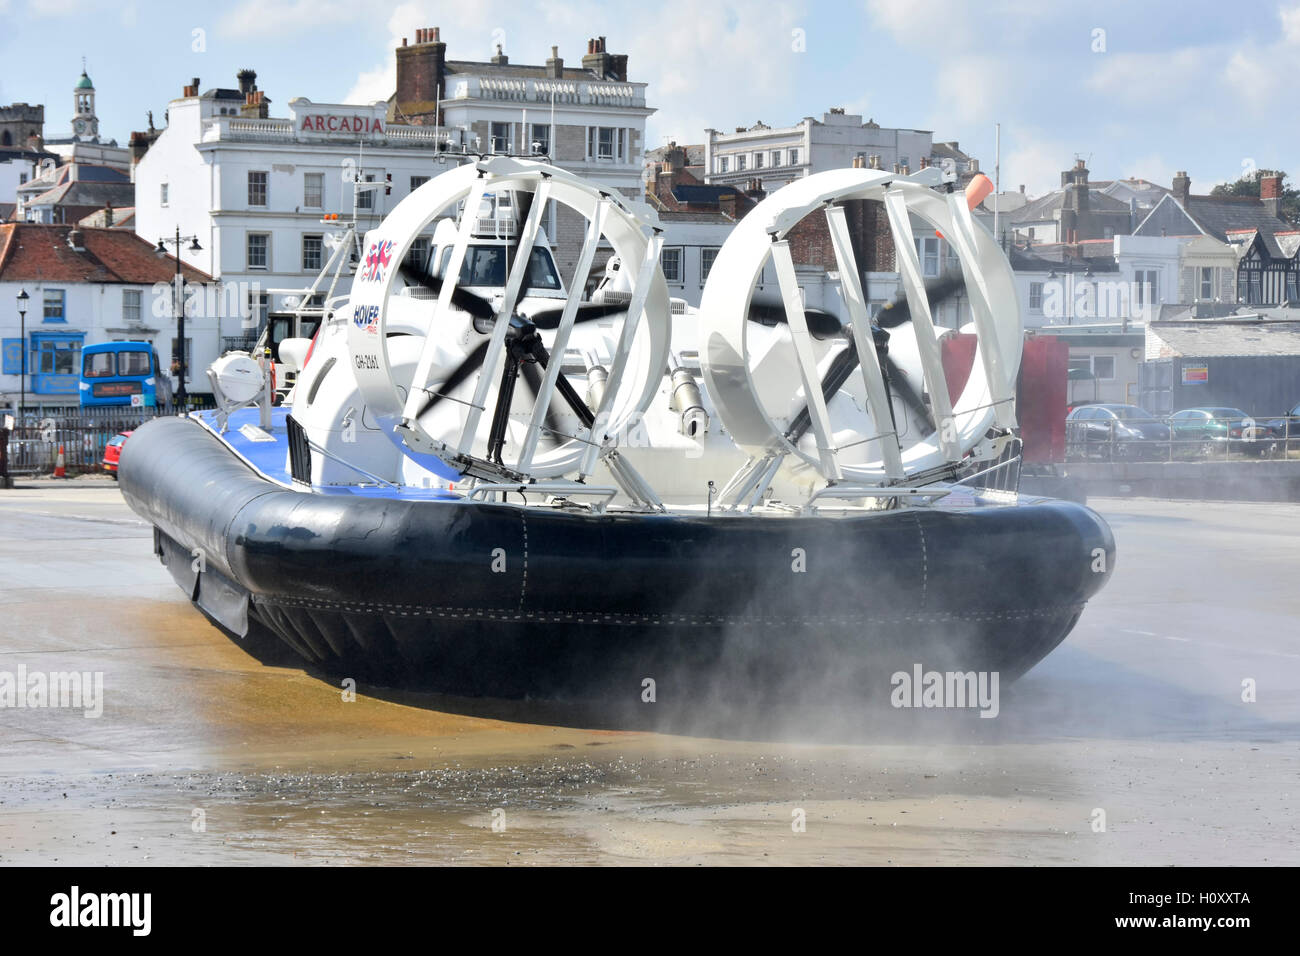 Hovercraft parked on Ryde town centre beach terminal of Hovertravel public transport service Portsmouth to Isle - Stock Image